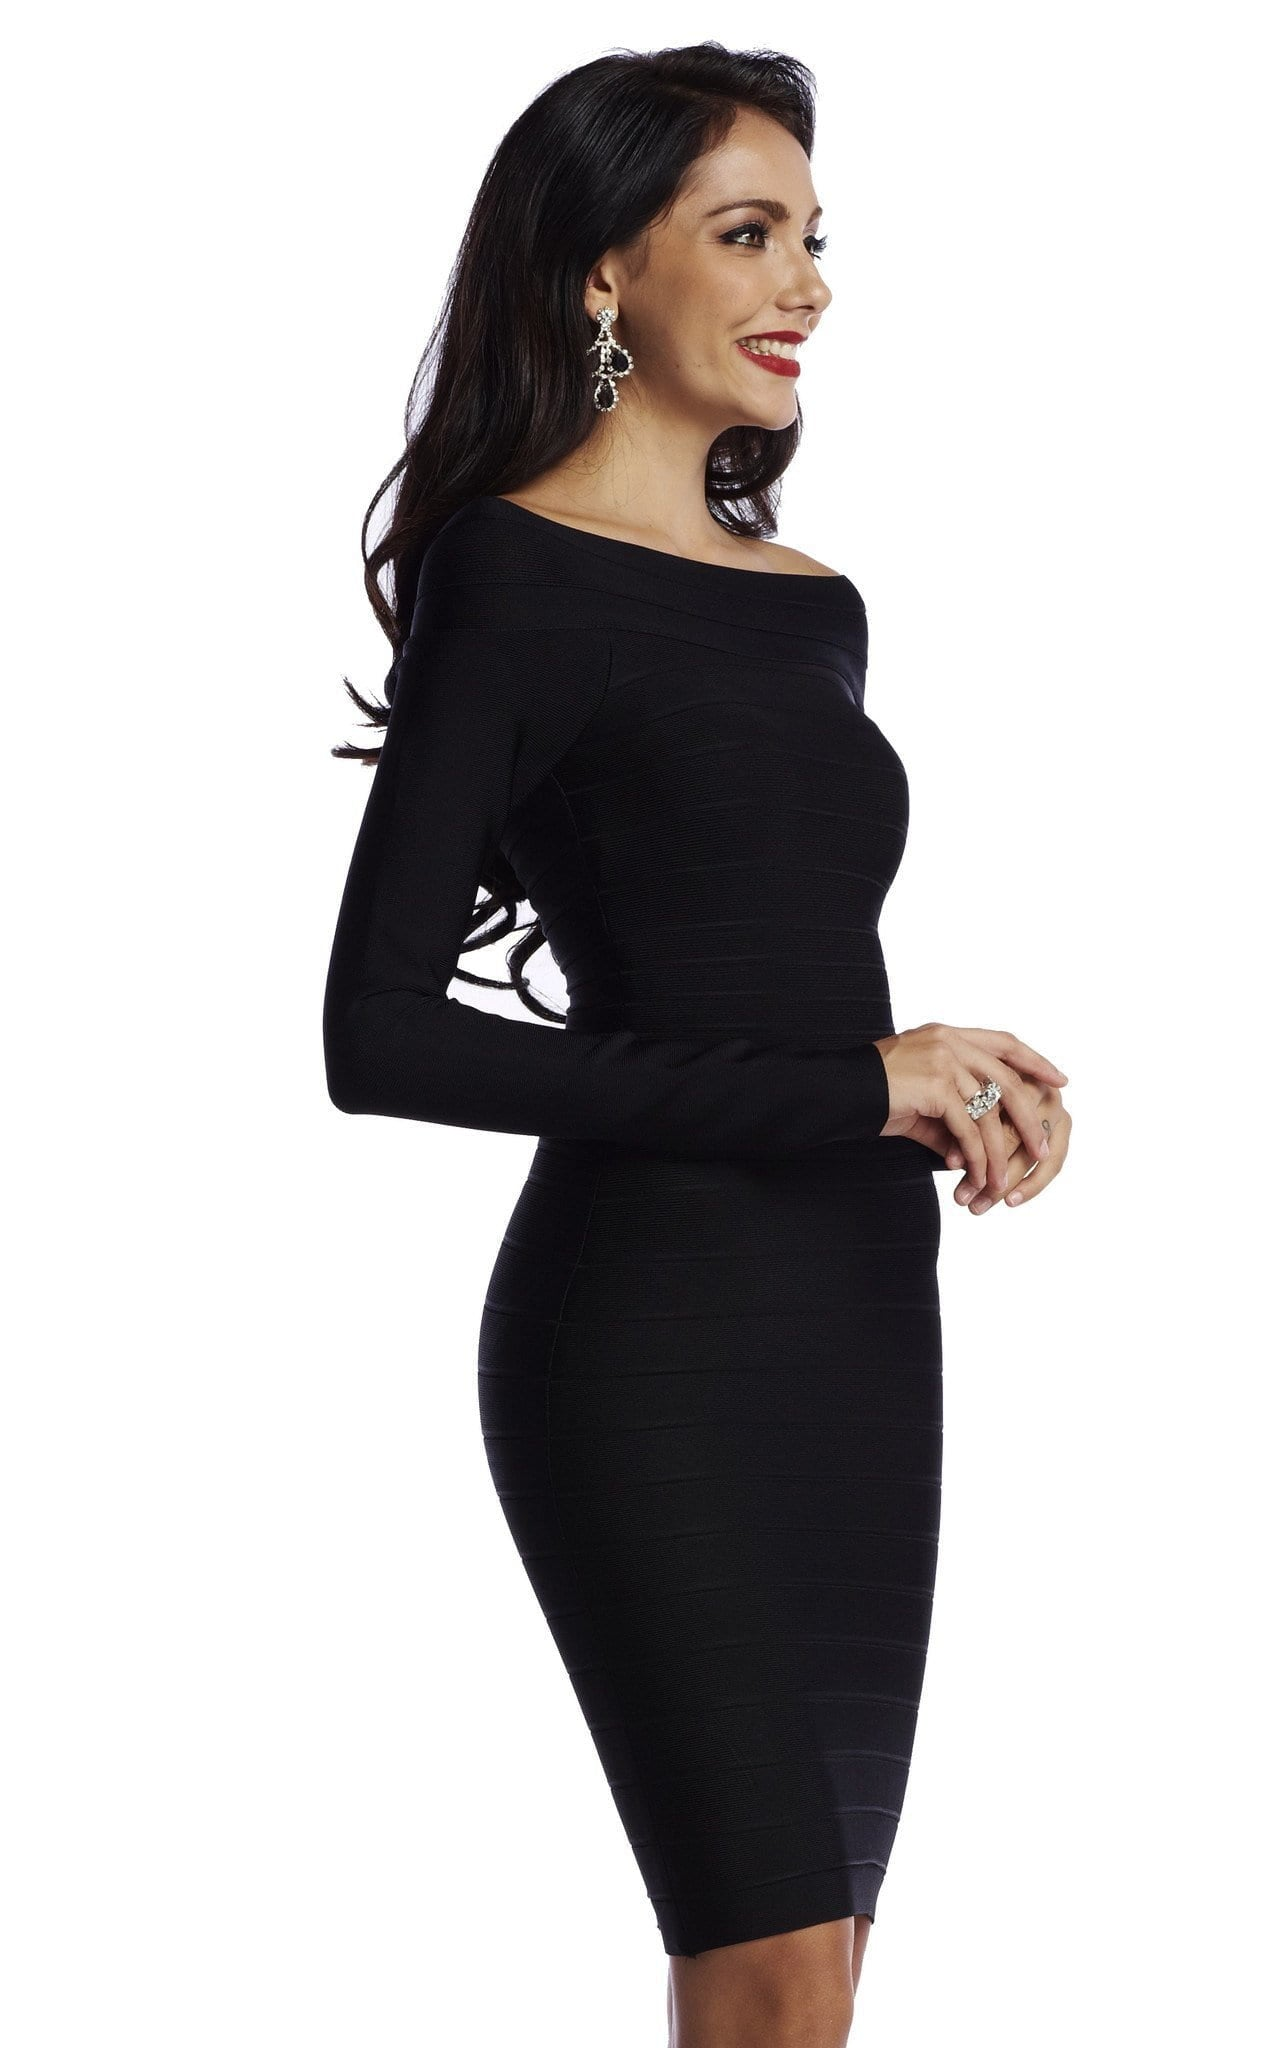 Black Long Sleeve Bandage Dress u2013 The Kewl Shop